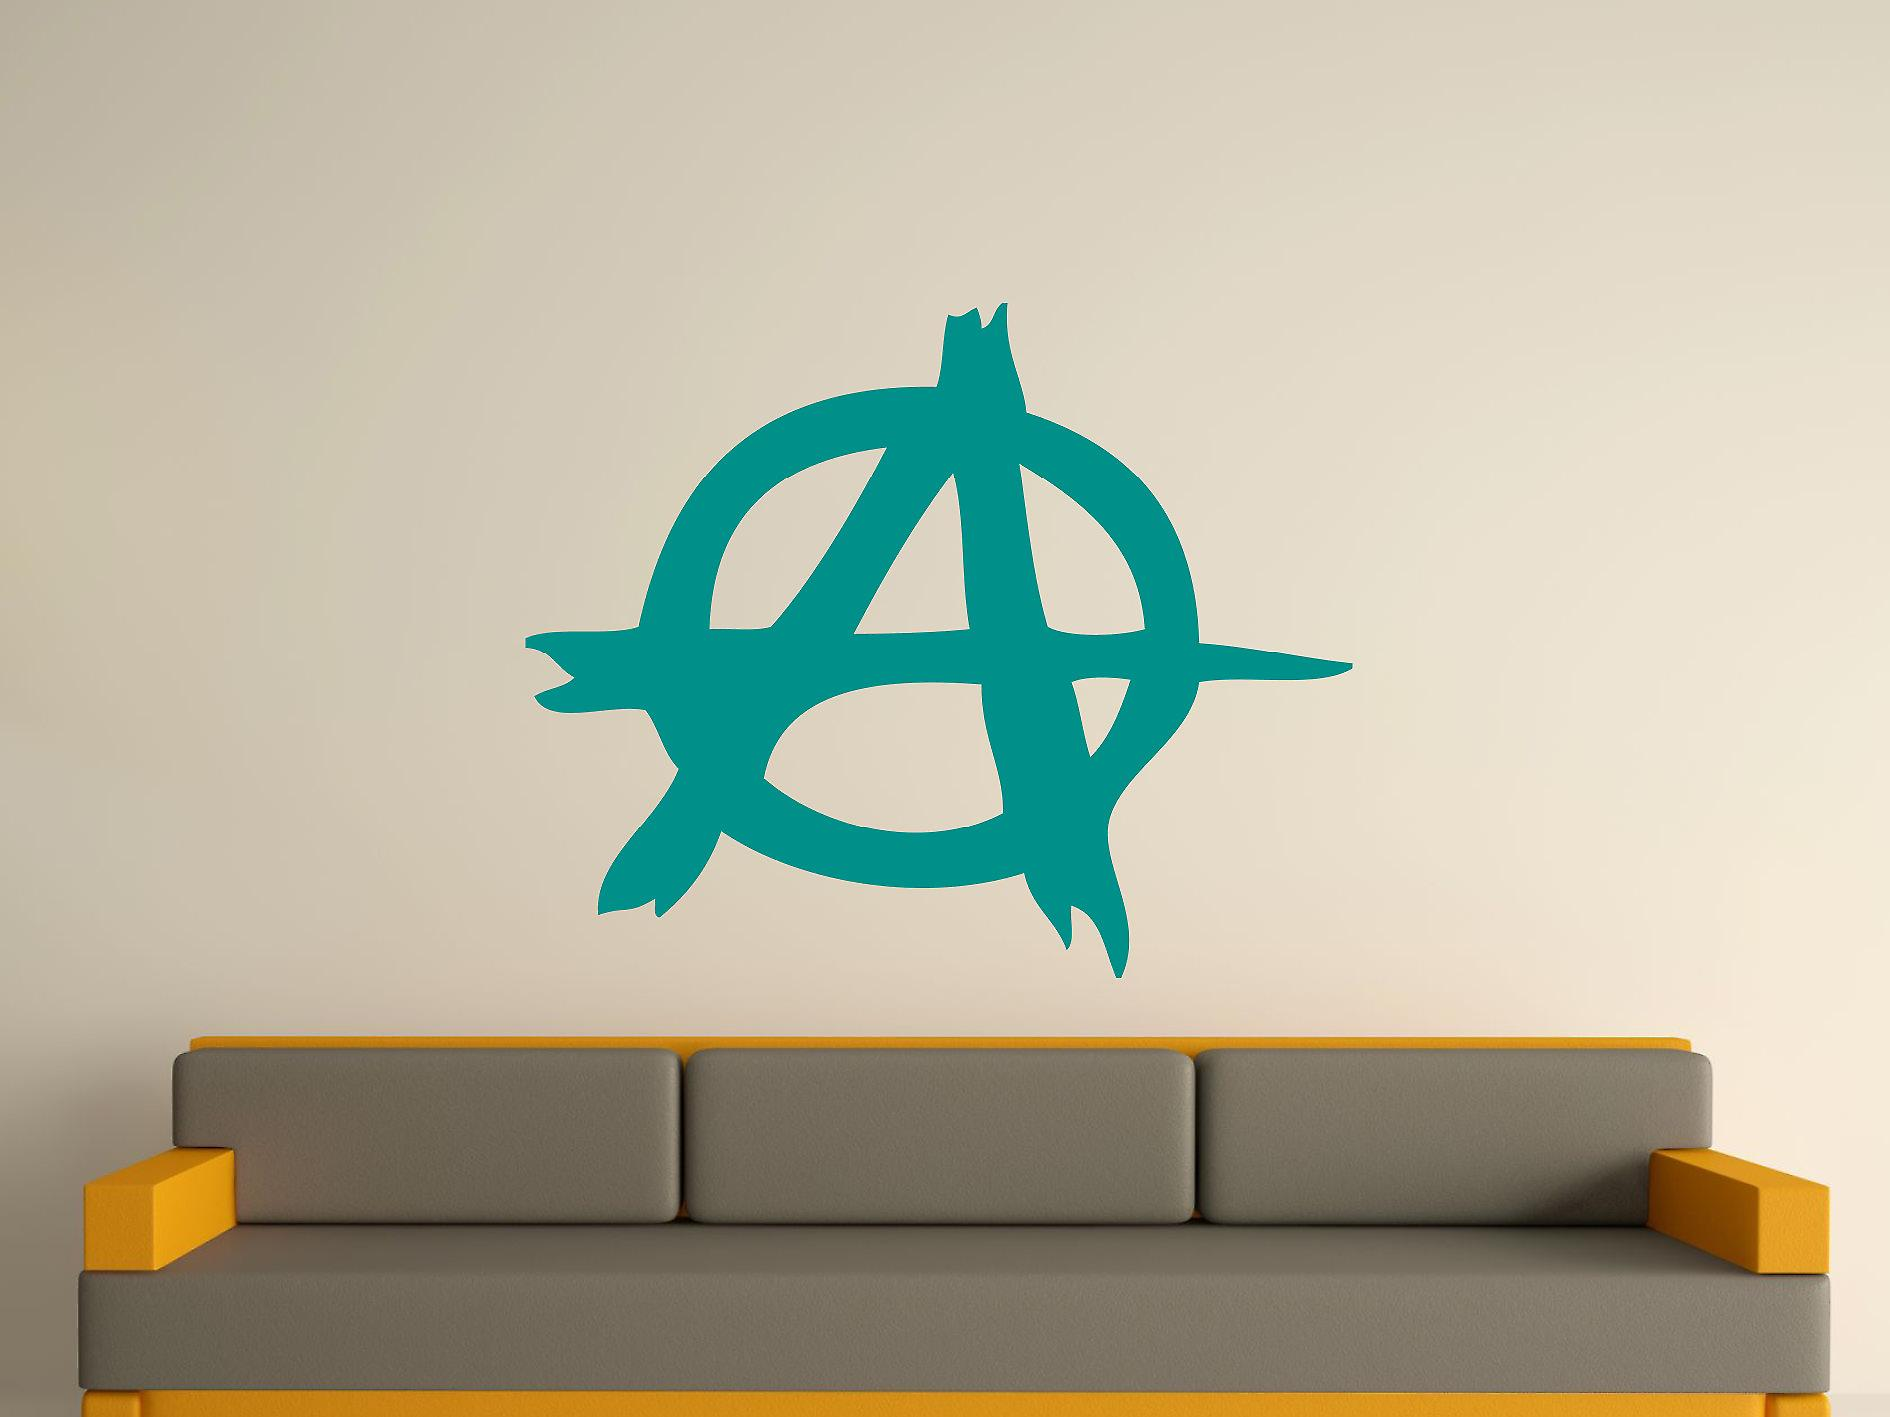 Anarchy Symbol Wall Art Sticker - Aqua Green